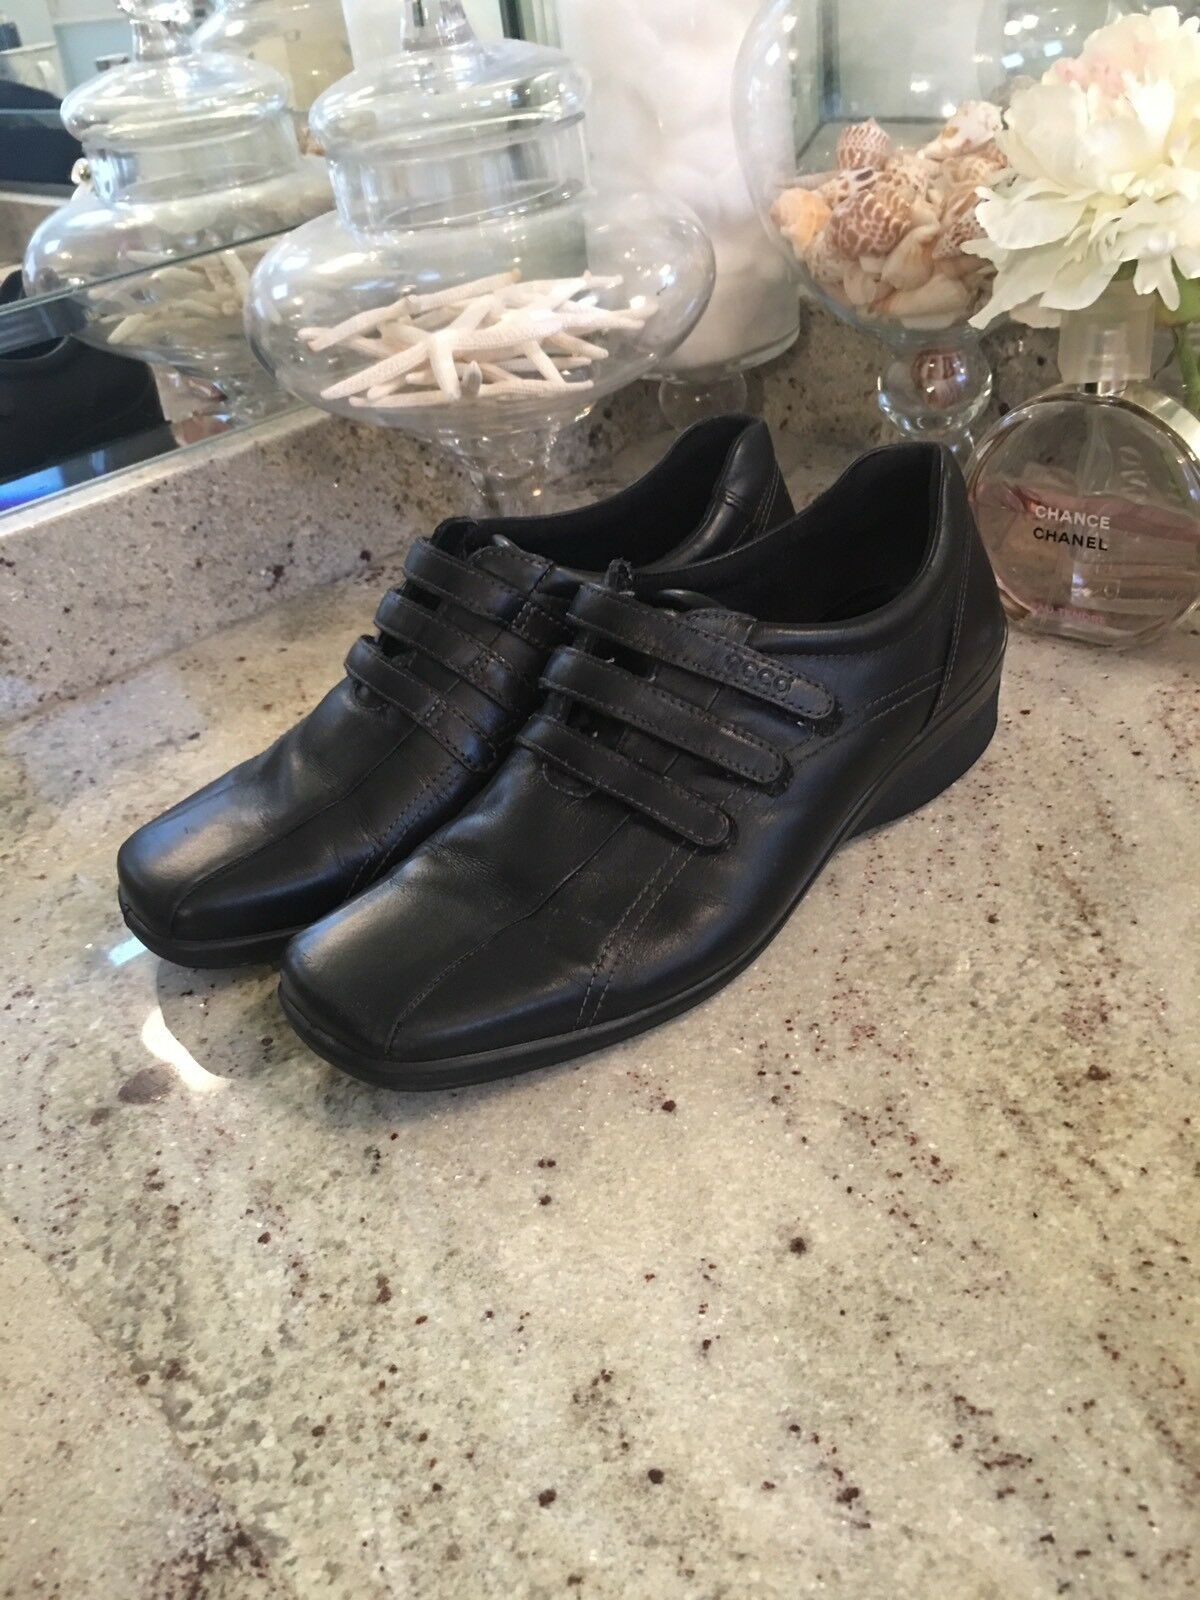 ECCO BLack Strappy Sneaker LEATHER WEDGE HEEL LOAFER SHOE WOMENS 40 US 9 - 9.5